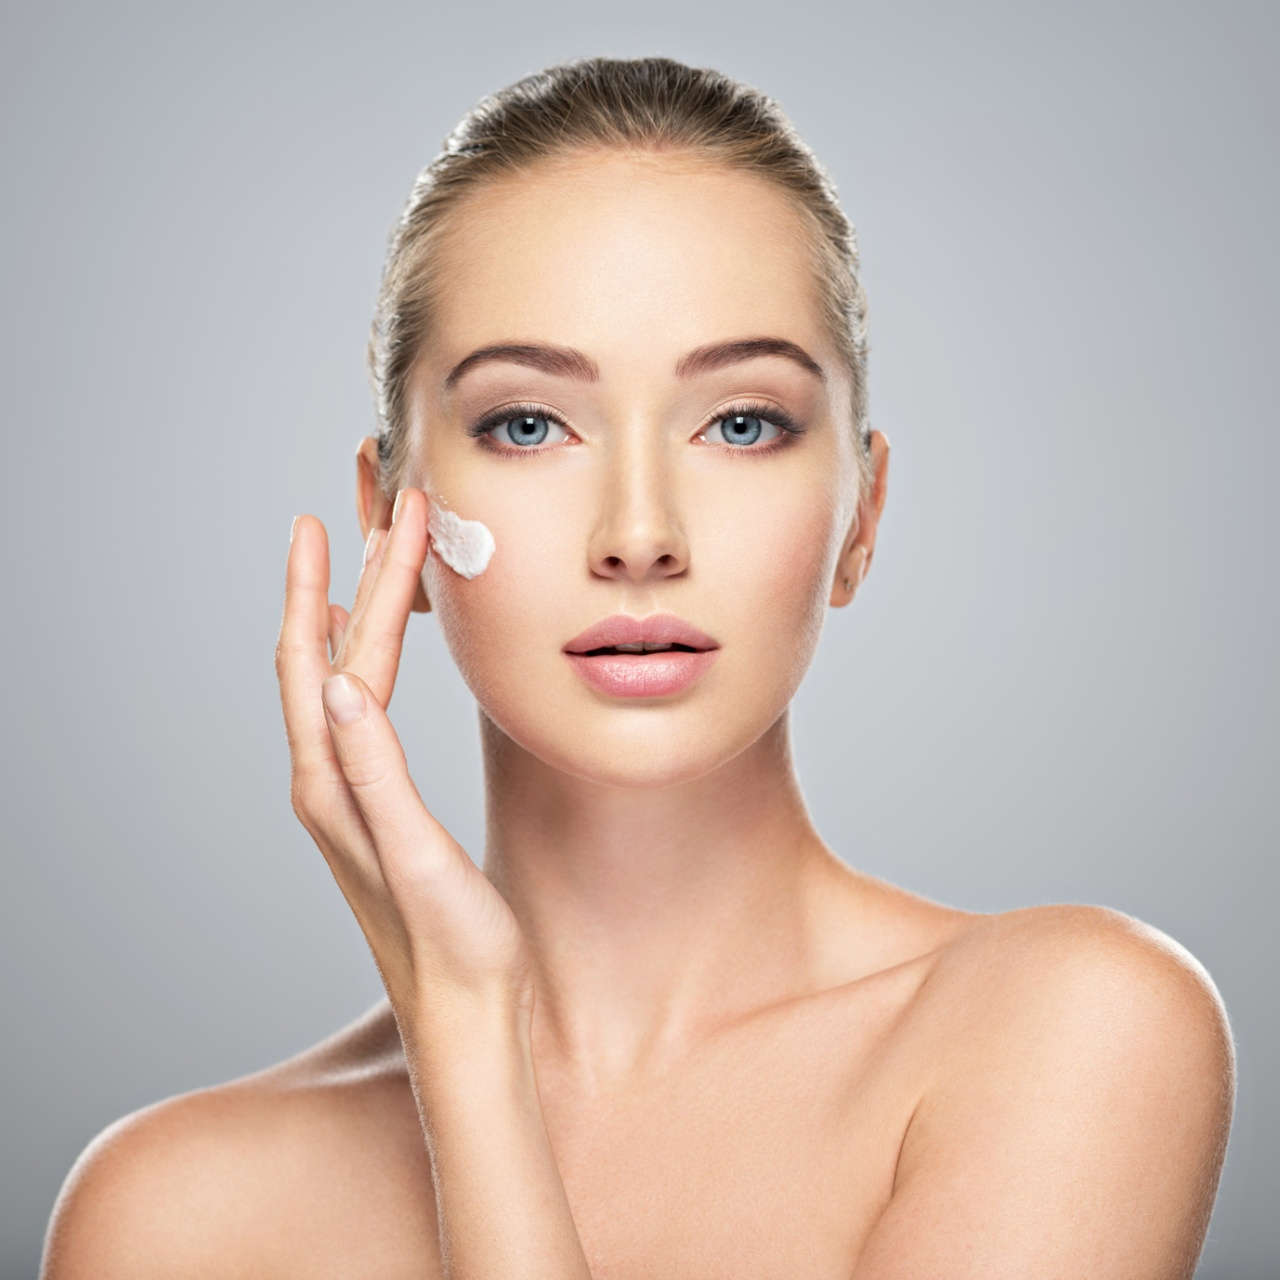 woman gets cream in the face. Skin care concept.